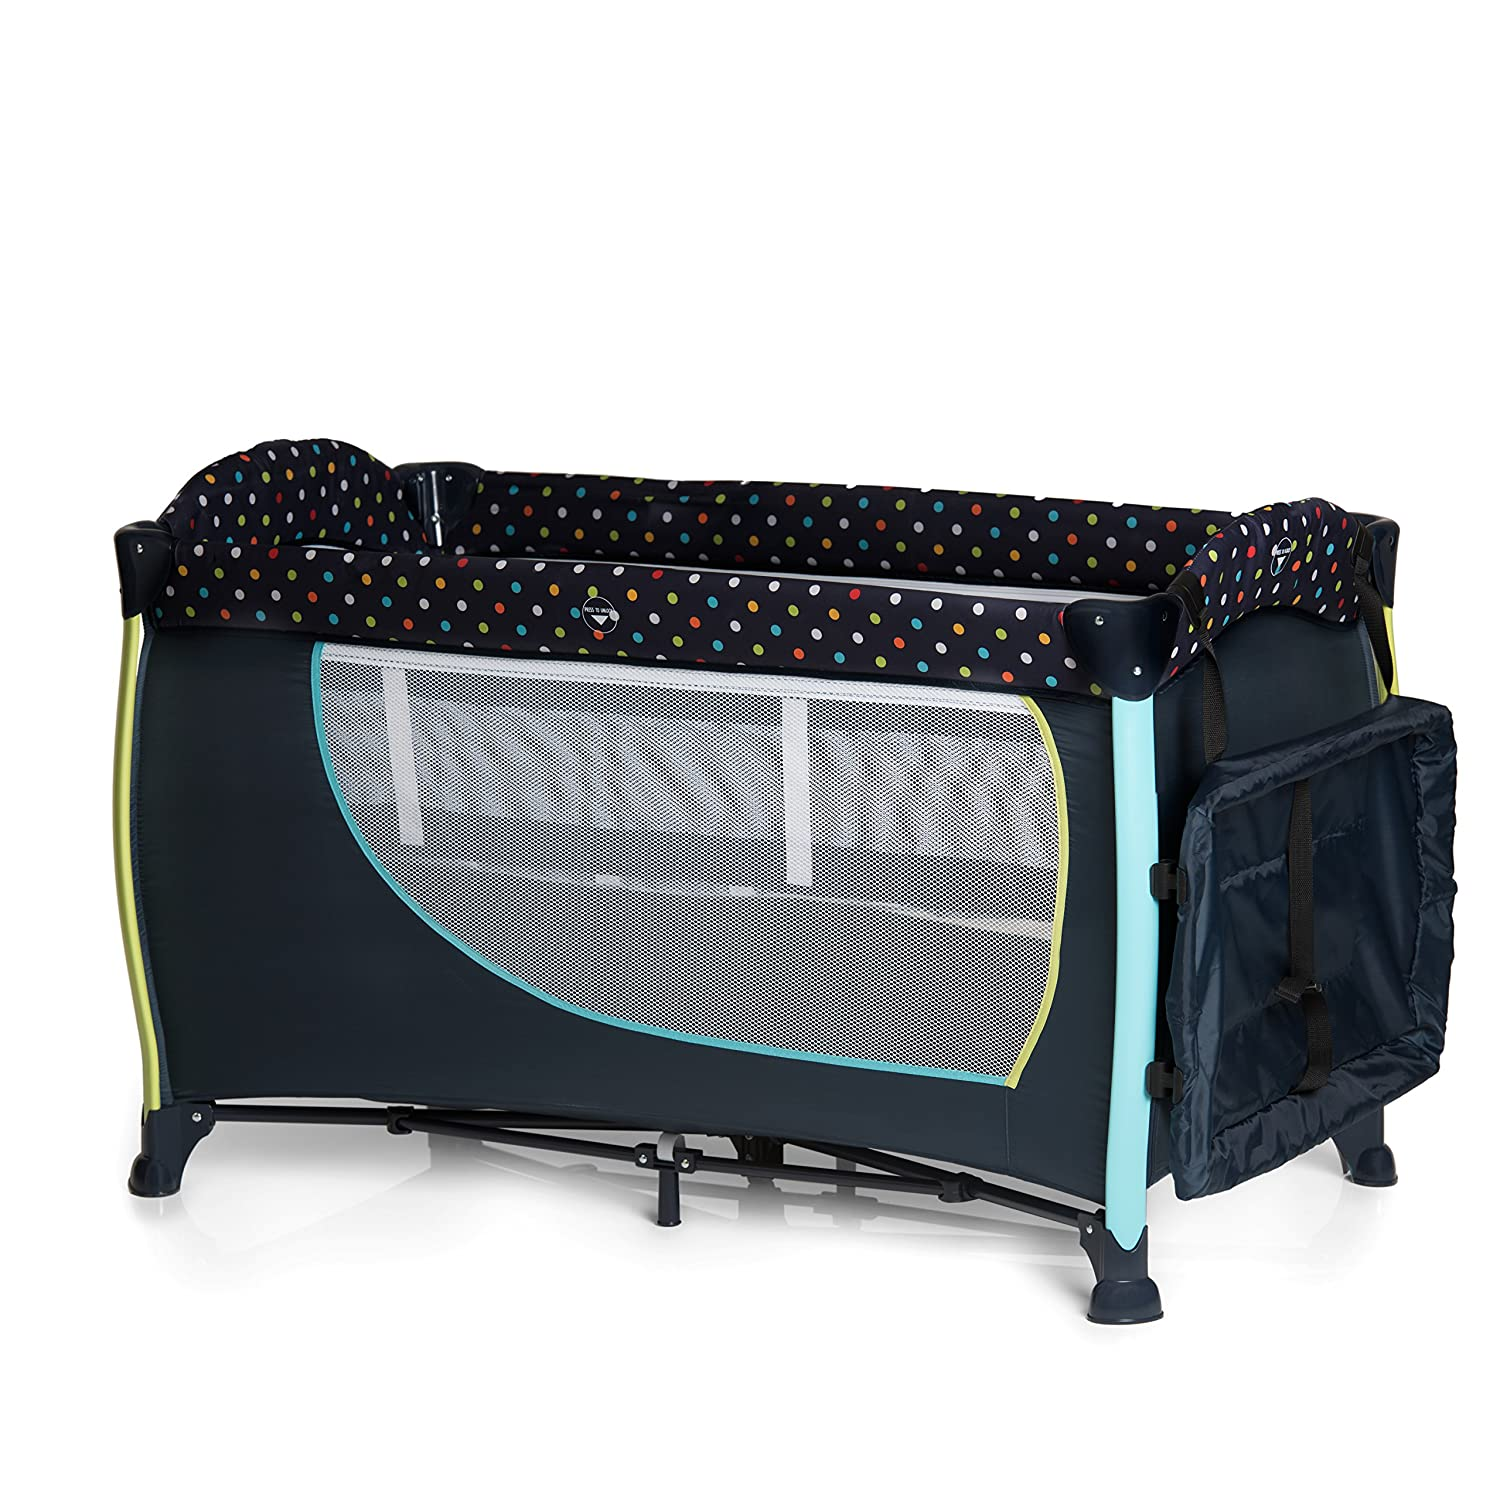 Hauck Sleep 'n Play Center II Travel Cot with folding mattress, bassinet and changing top, 120 x 60cm, Forest Fun, Grey Hauck Fun for Kids Ltd H-60058-EN-000-000